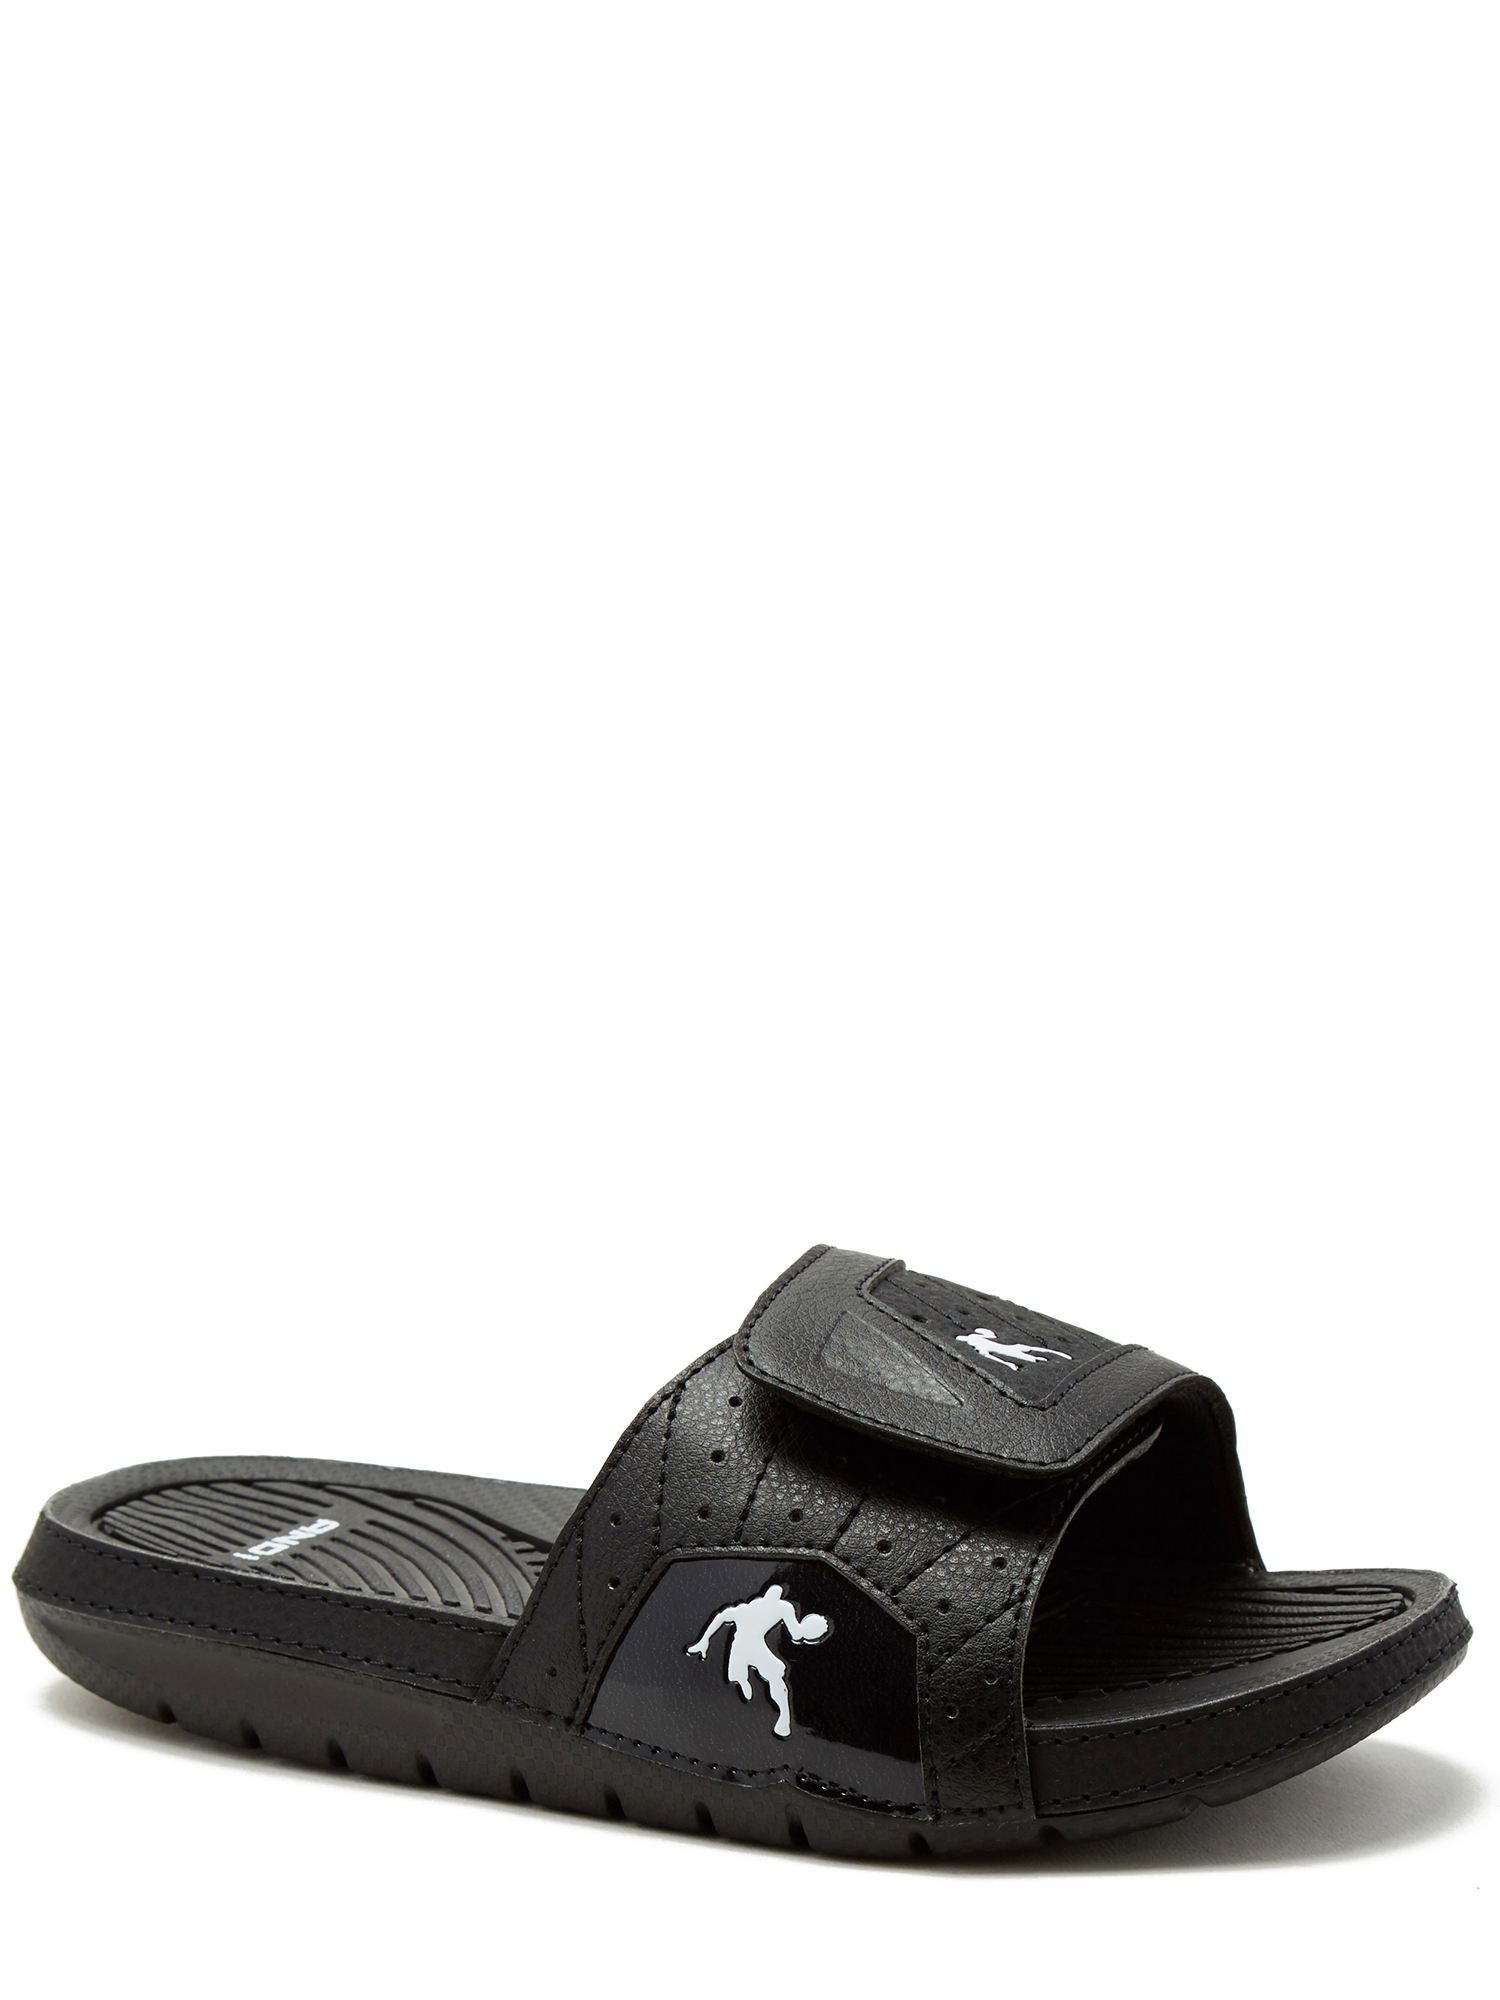 AND1 Boys' Crossover Slide Sandal